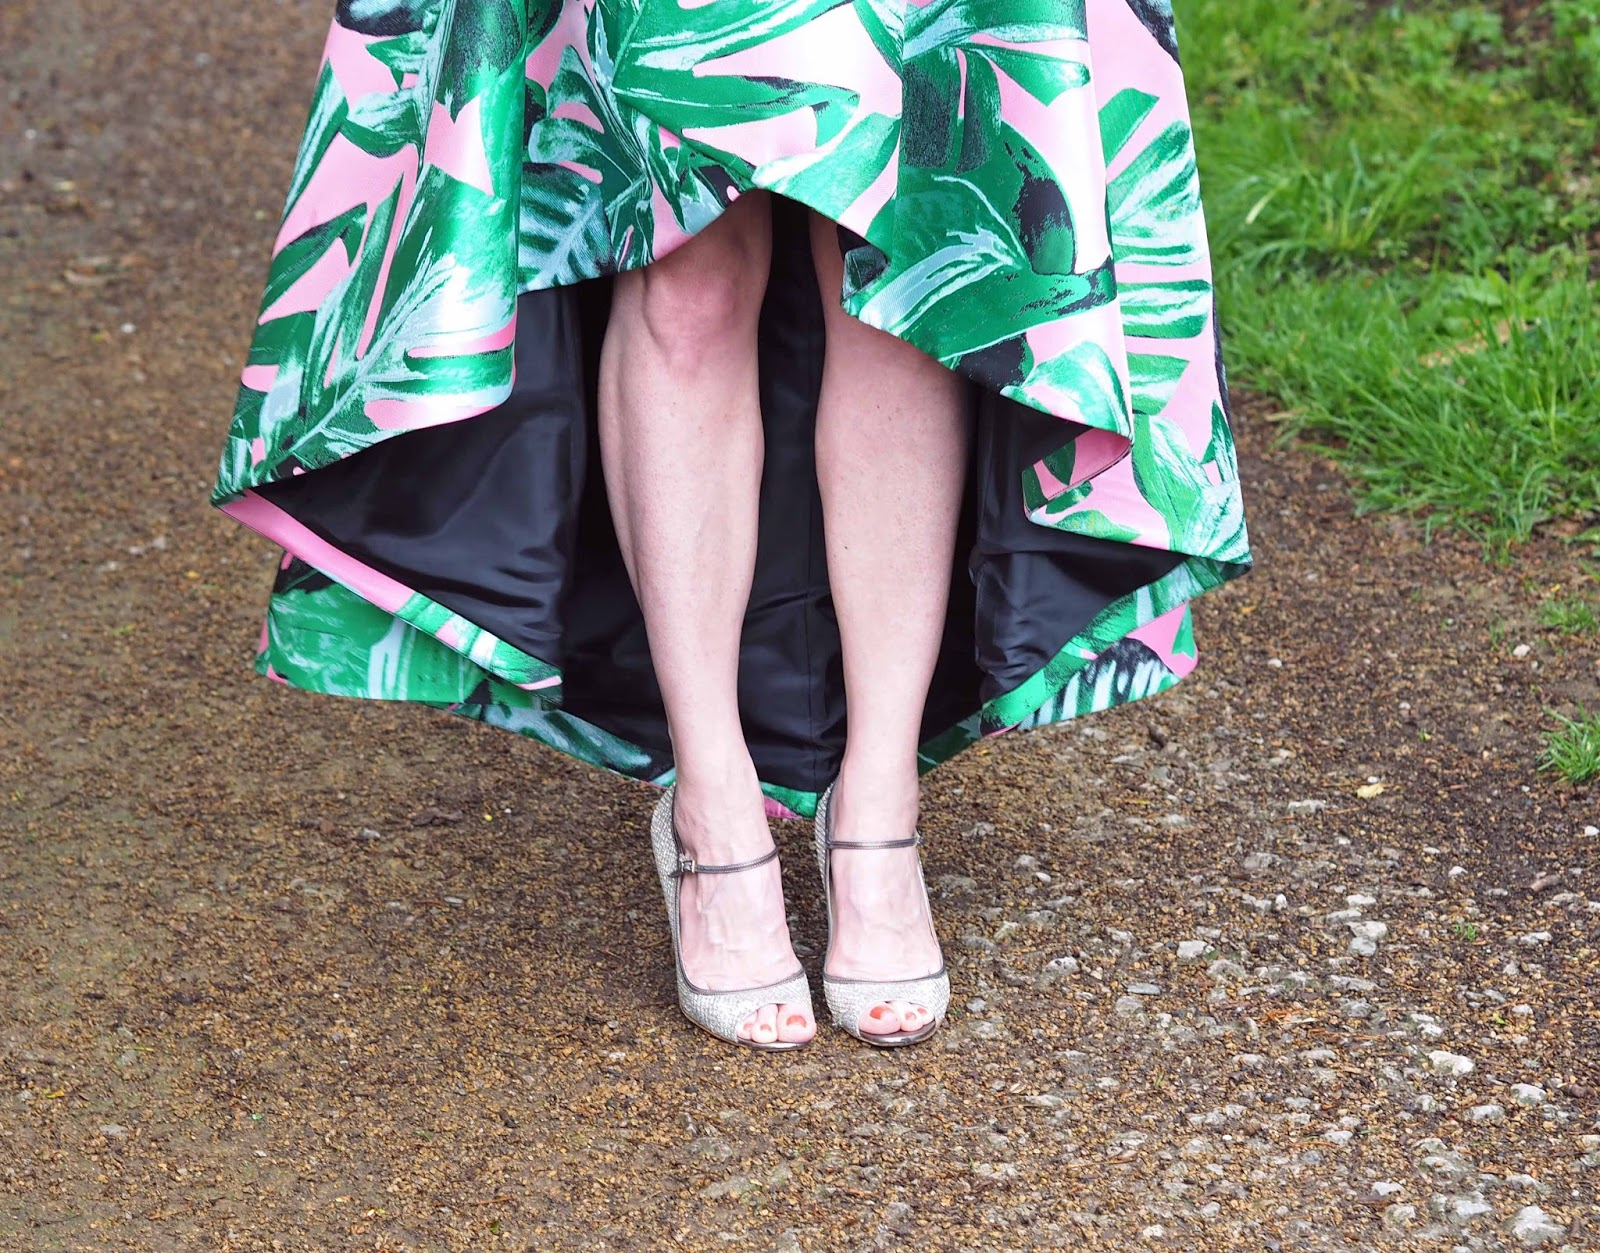 Asymmetric hem statement skirt, pink and black with large leaves, pockets and contrast lining champagne glitter Jimmy Choo sandals, occasionwear,